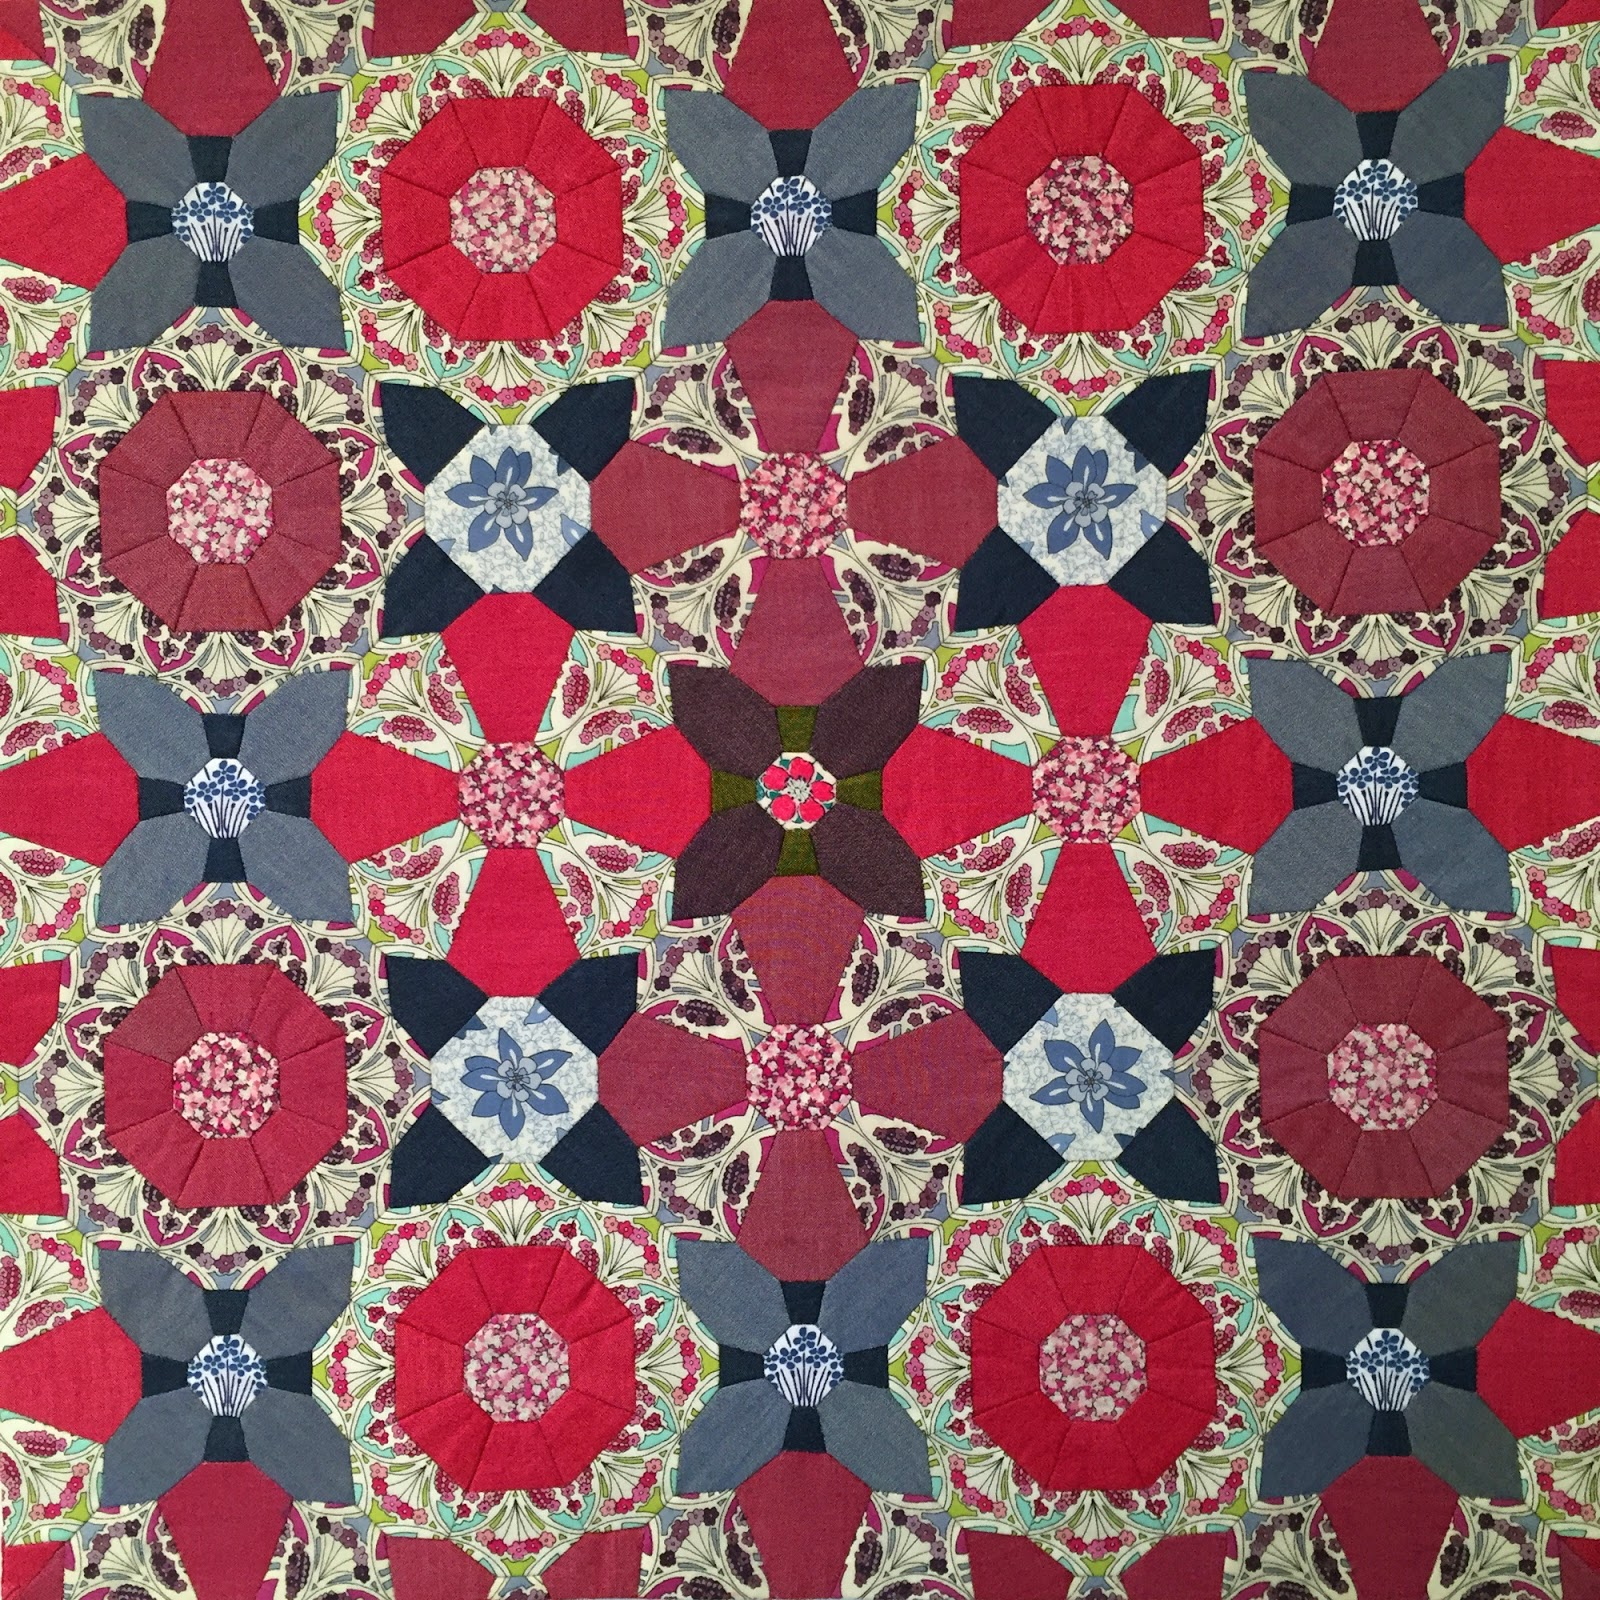 Flossie teacakes ring a roses english paper piecing pattern ring a roses english paper piecing pattern pronofoot35fo Image collections